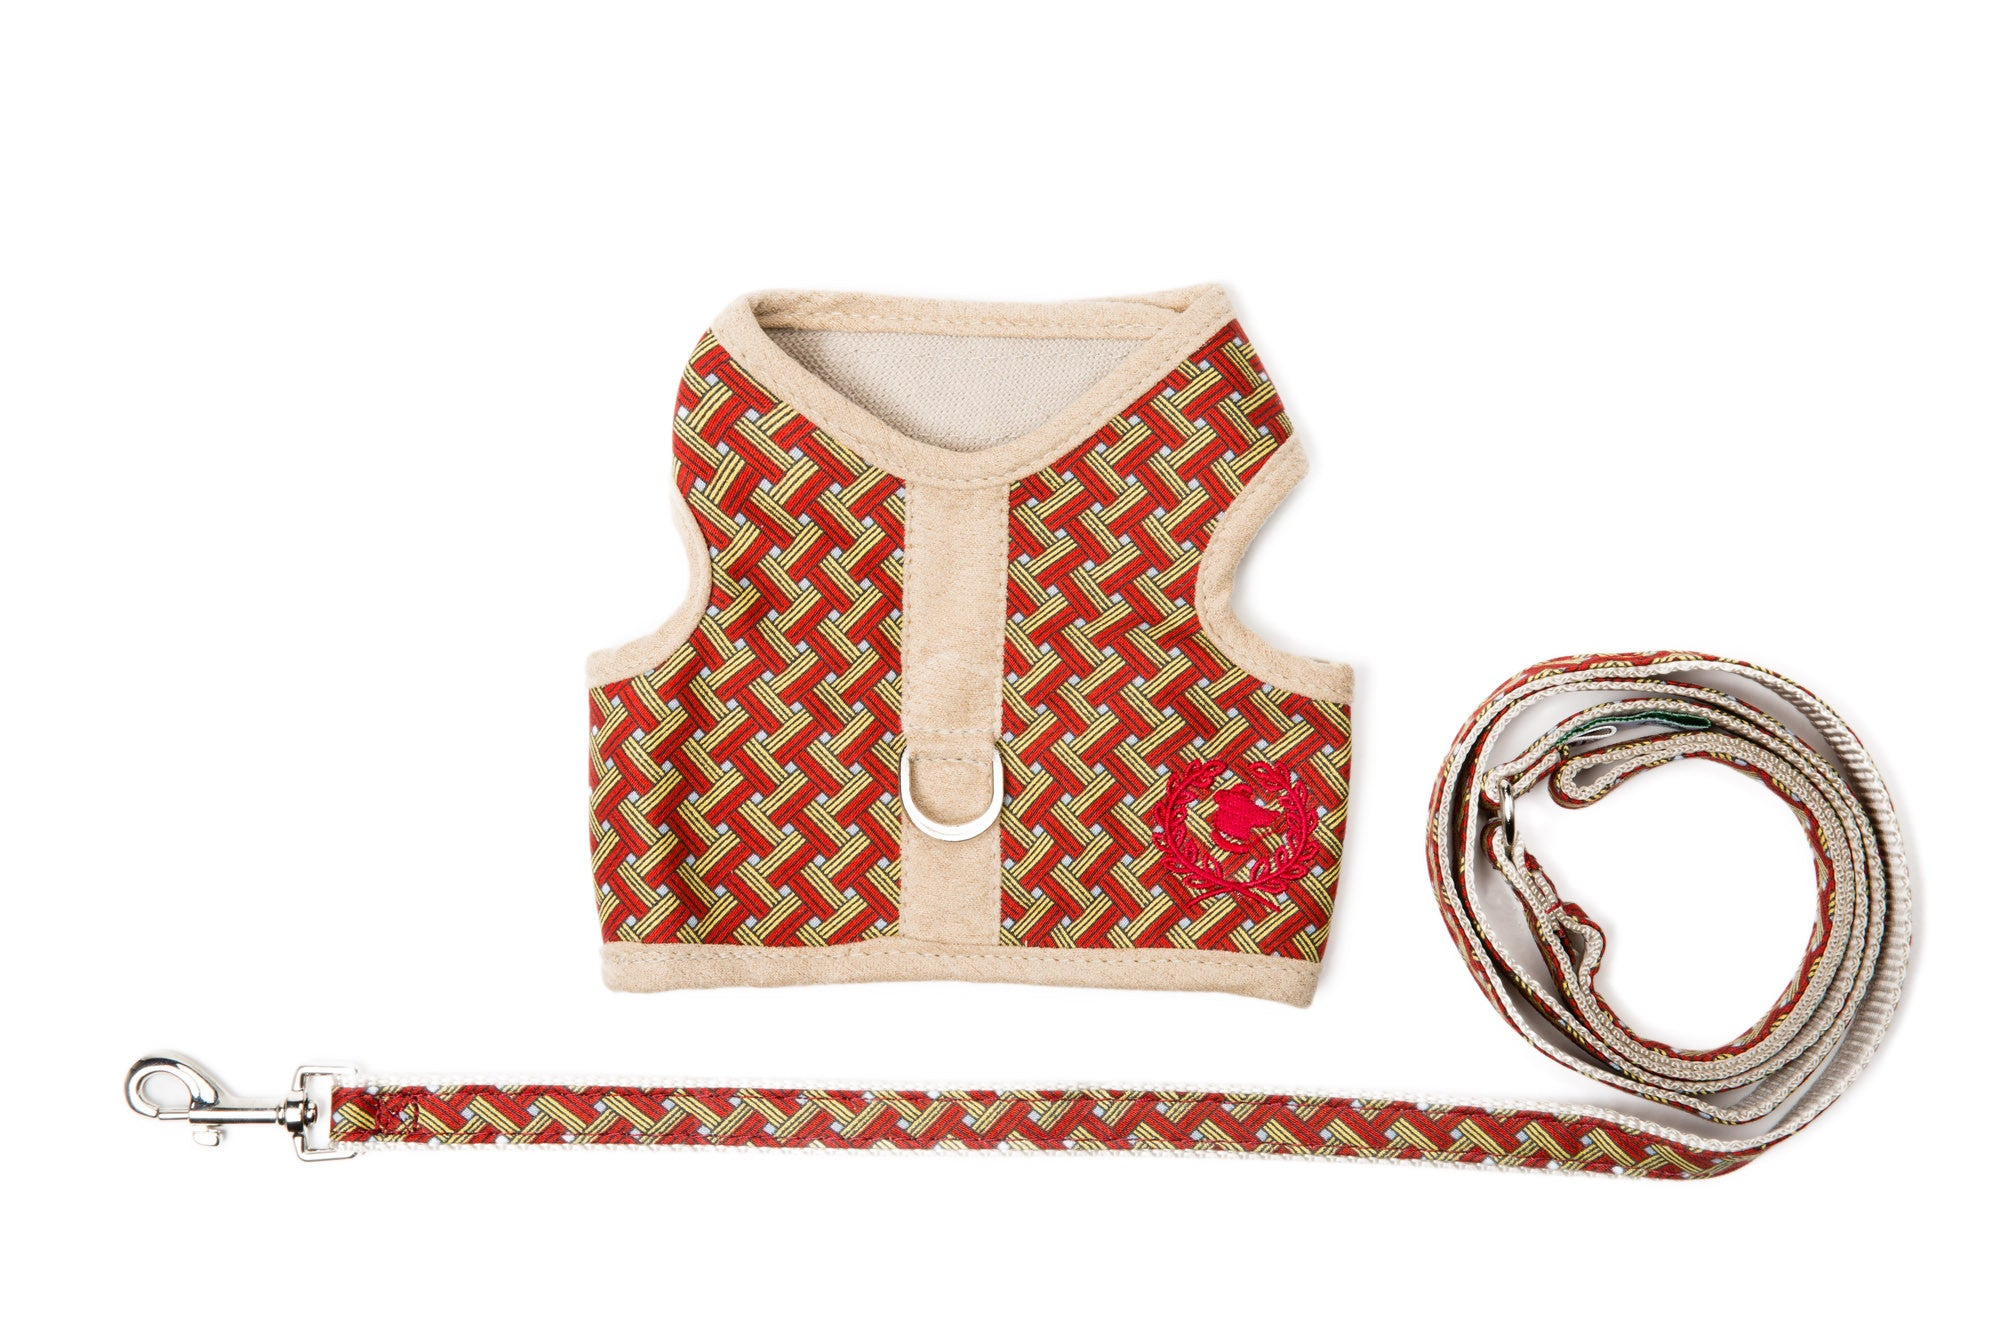 Signature Collection - UNLINED Dog Body Harnesses - 3 Options